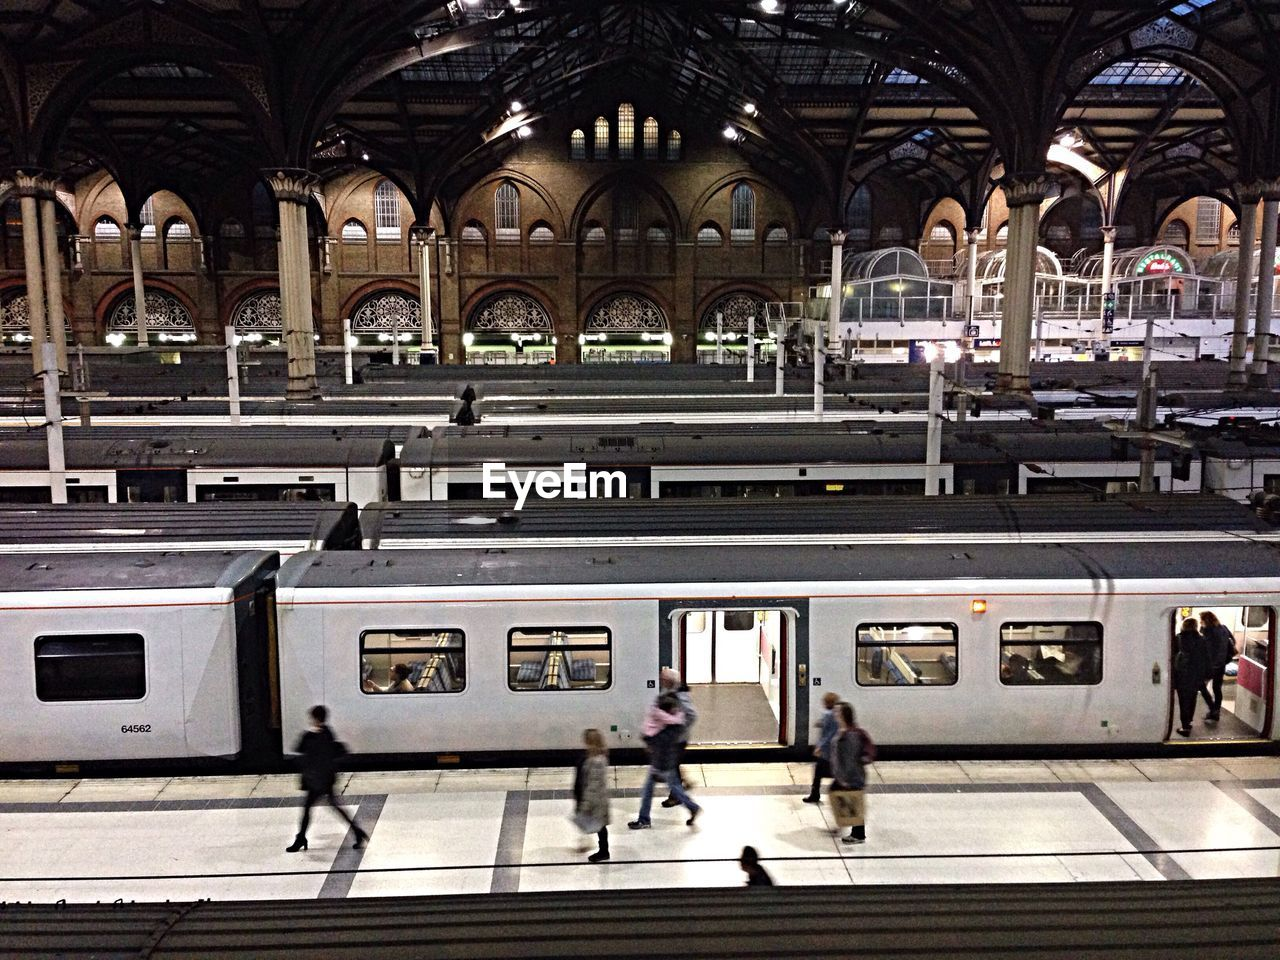 public transportation, railroad station, real people, transportation, large group of people, railroad station platform, rail transportation, train - vehicle, architecture, men, women, built structure, day, people, adults only, adult, indoors, city, subway train, building exterior, clock